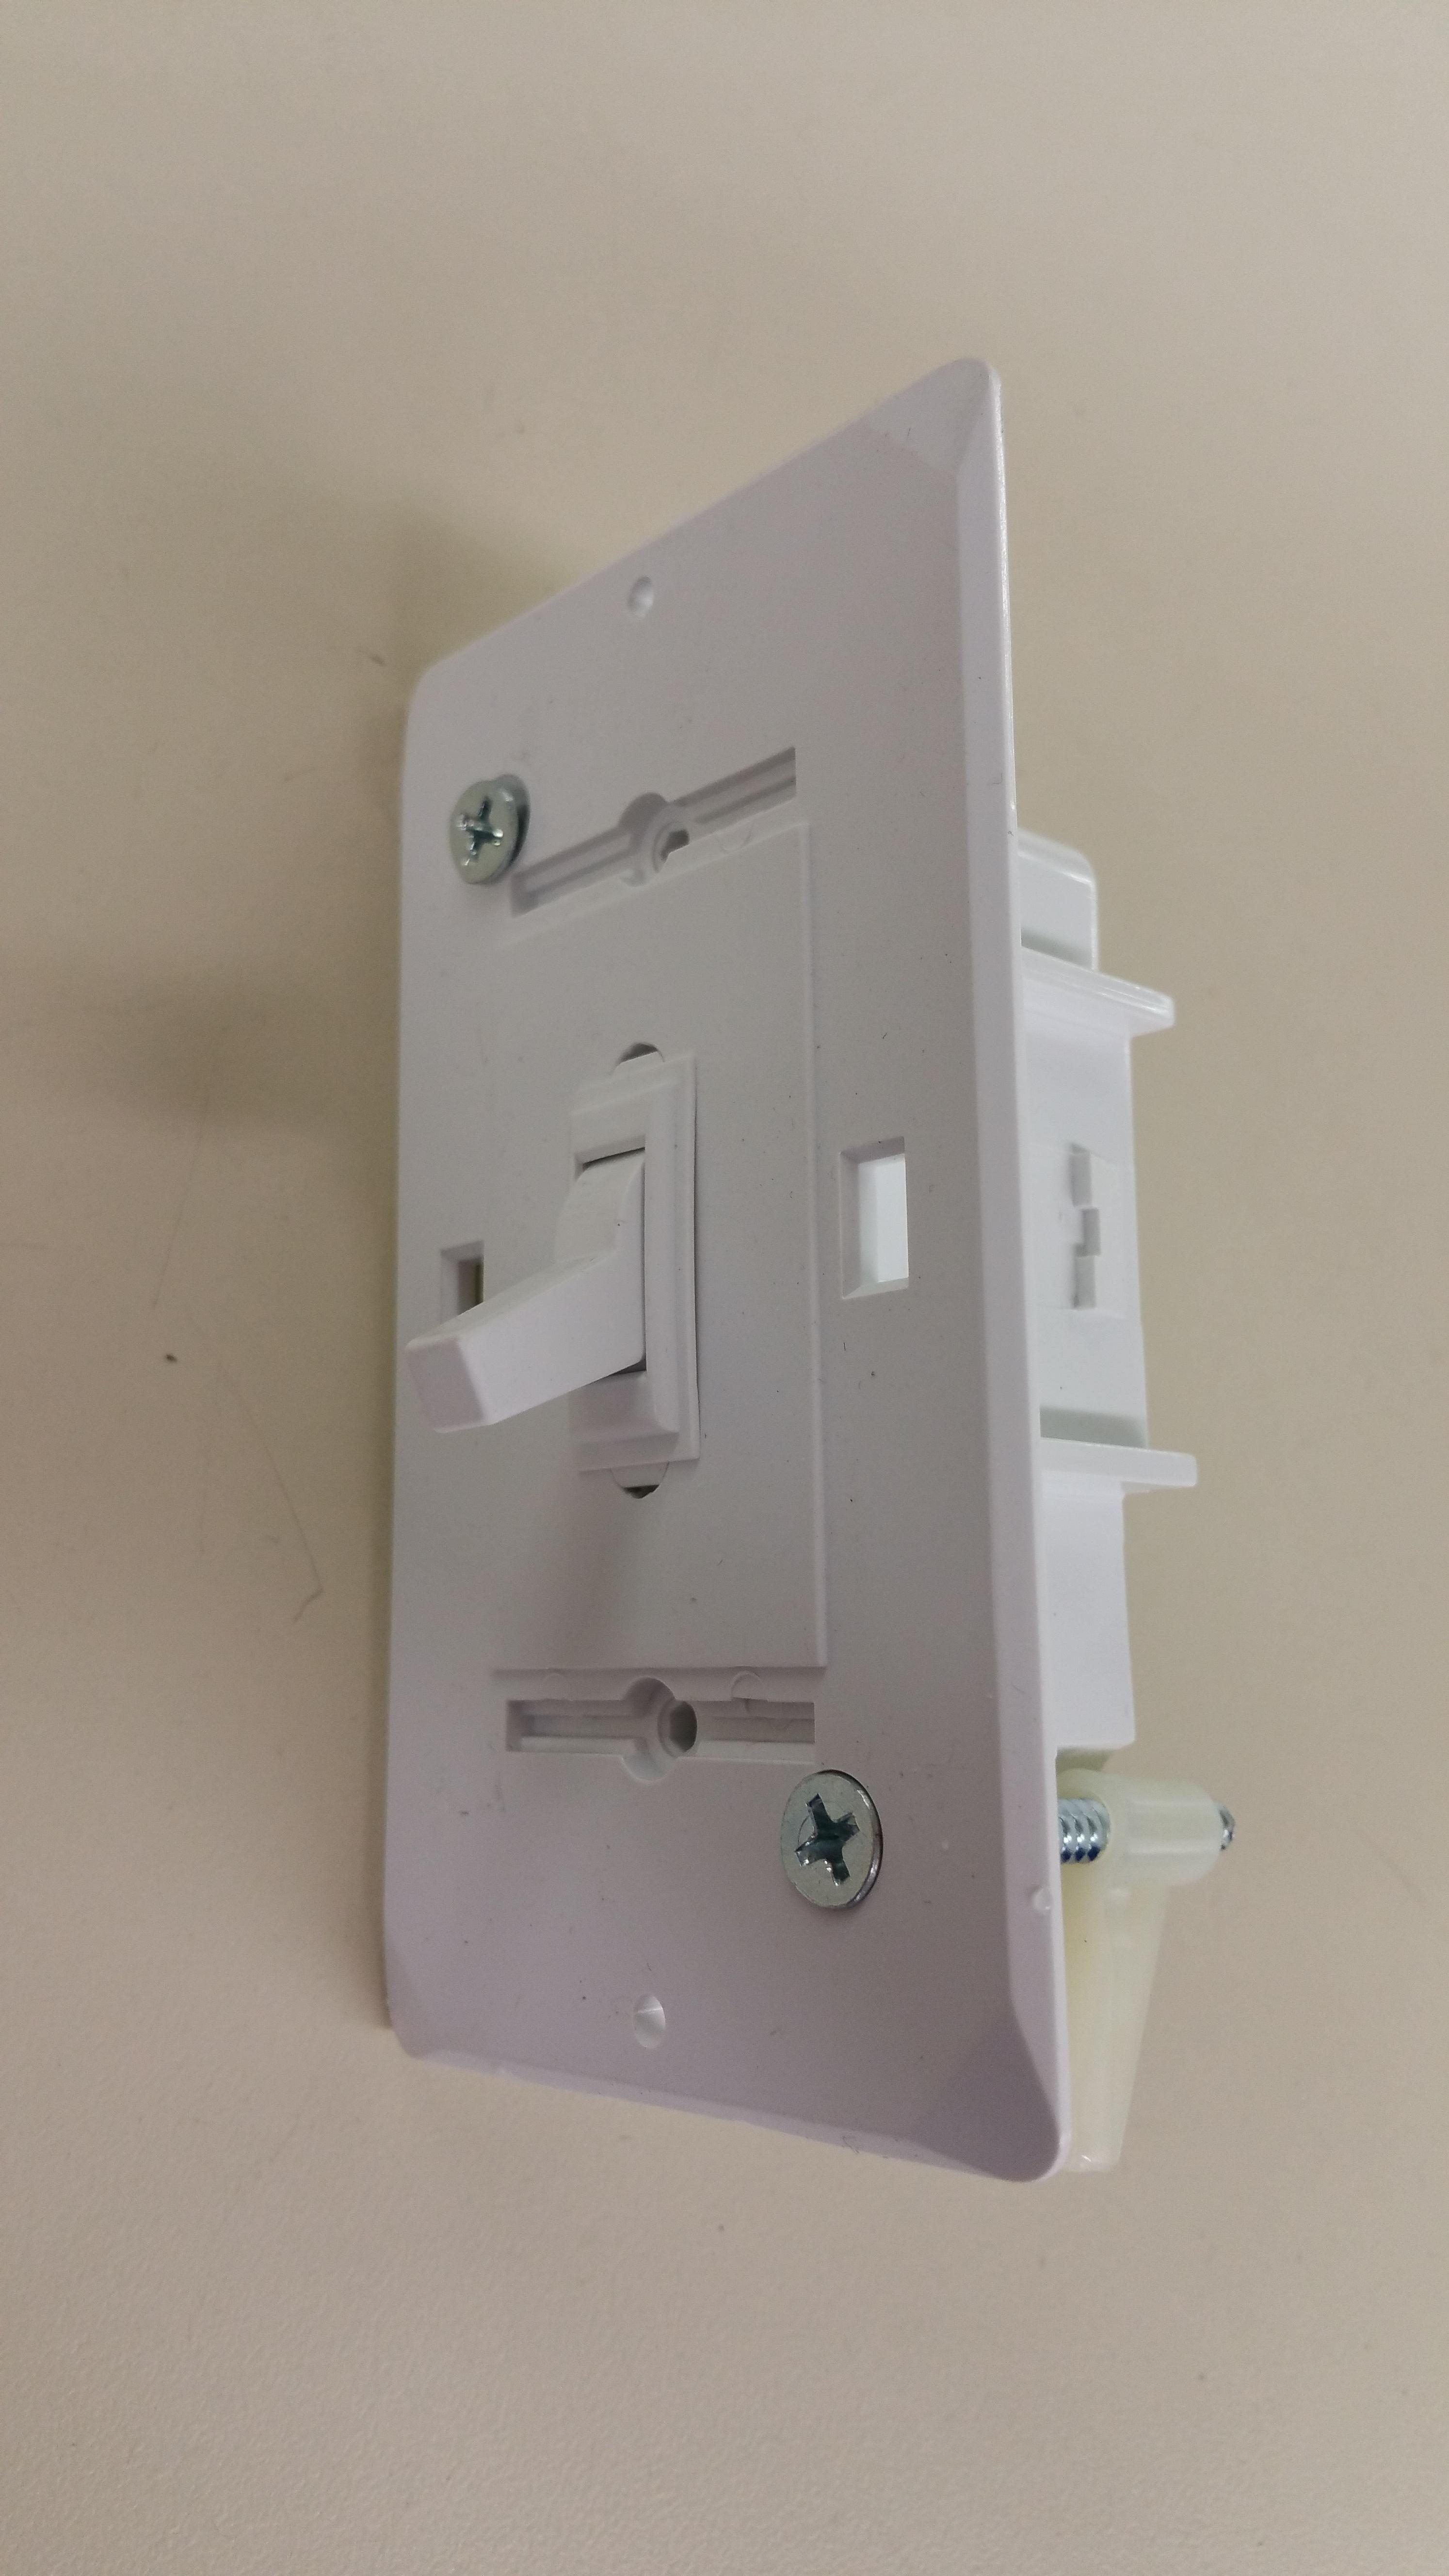 Buy Online Self Contained Switch White - American Mobile Home Supply